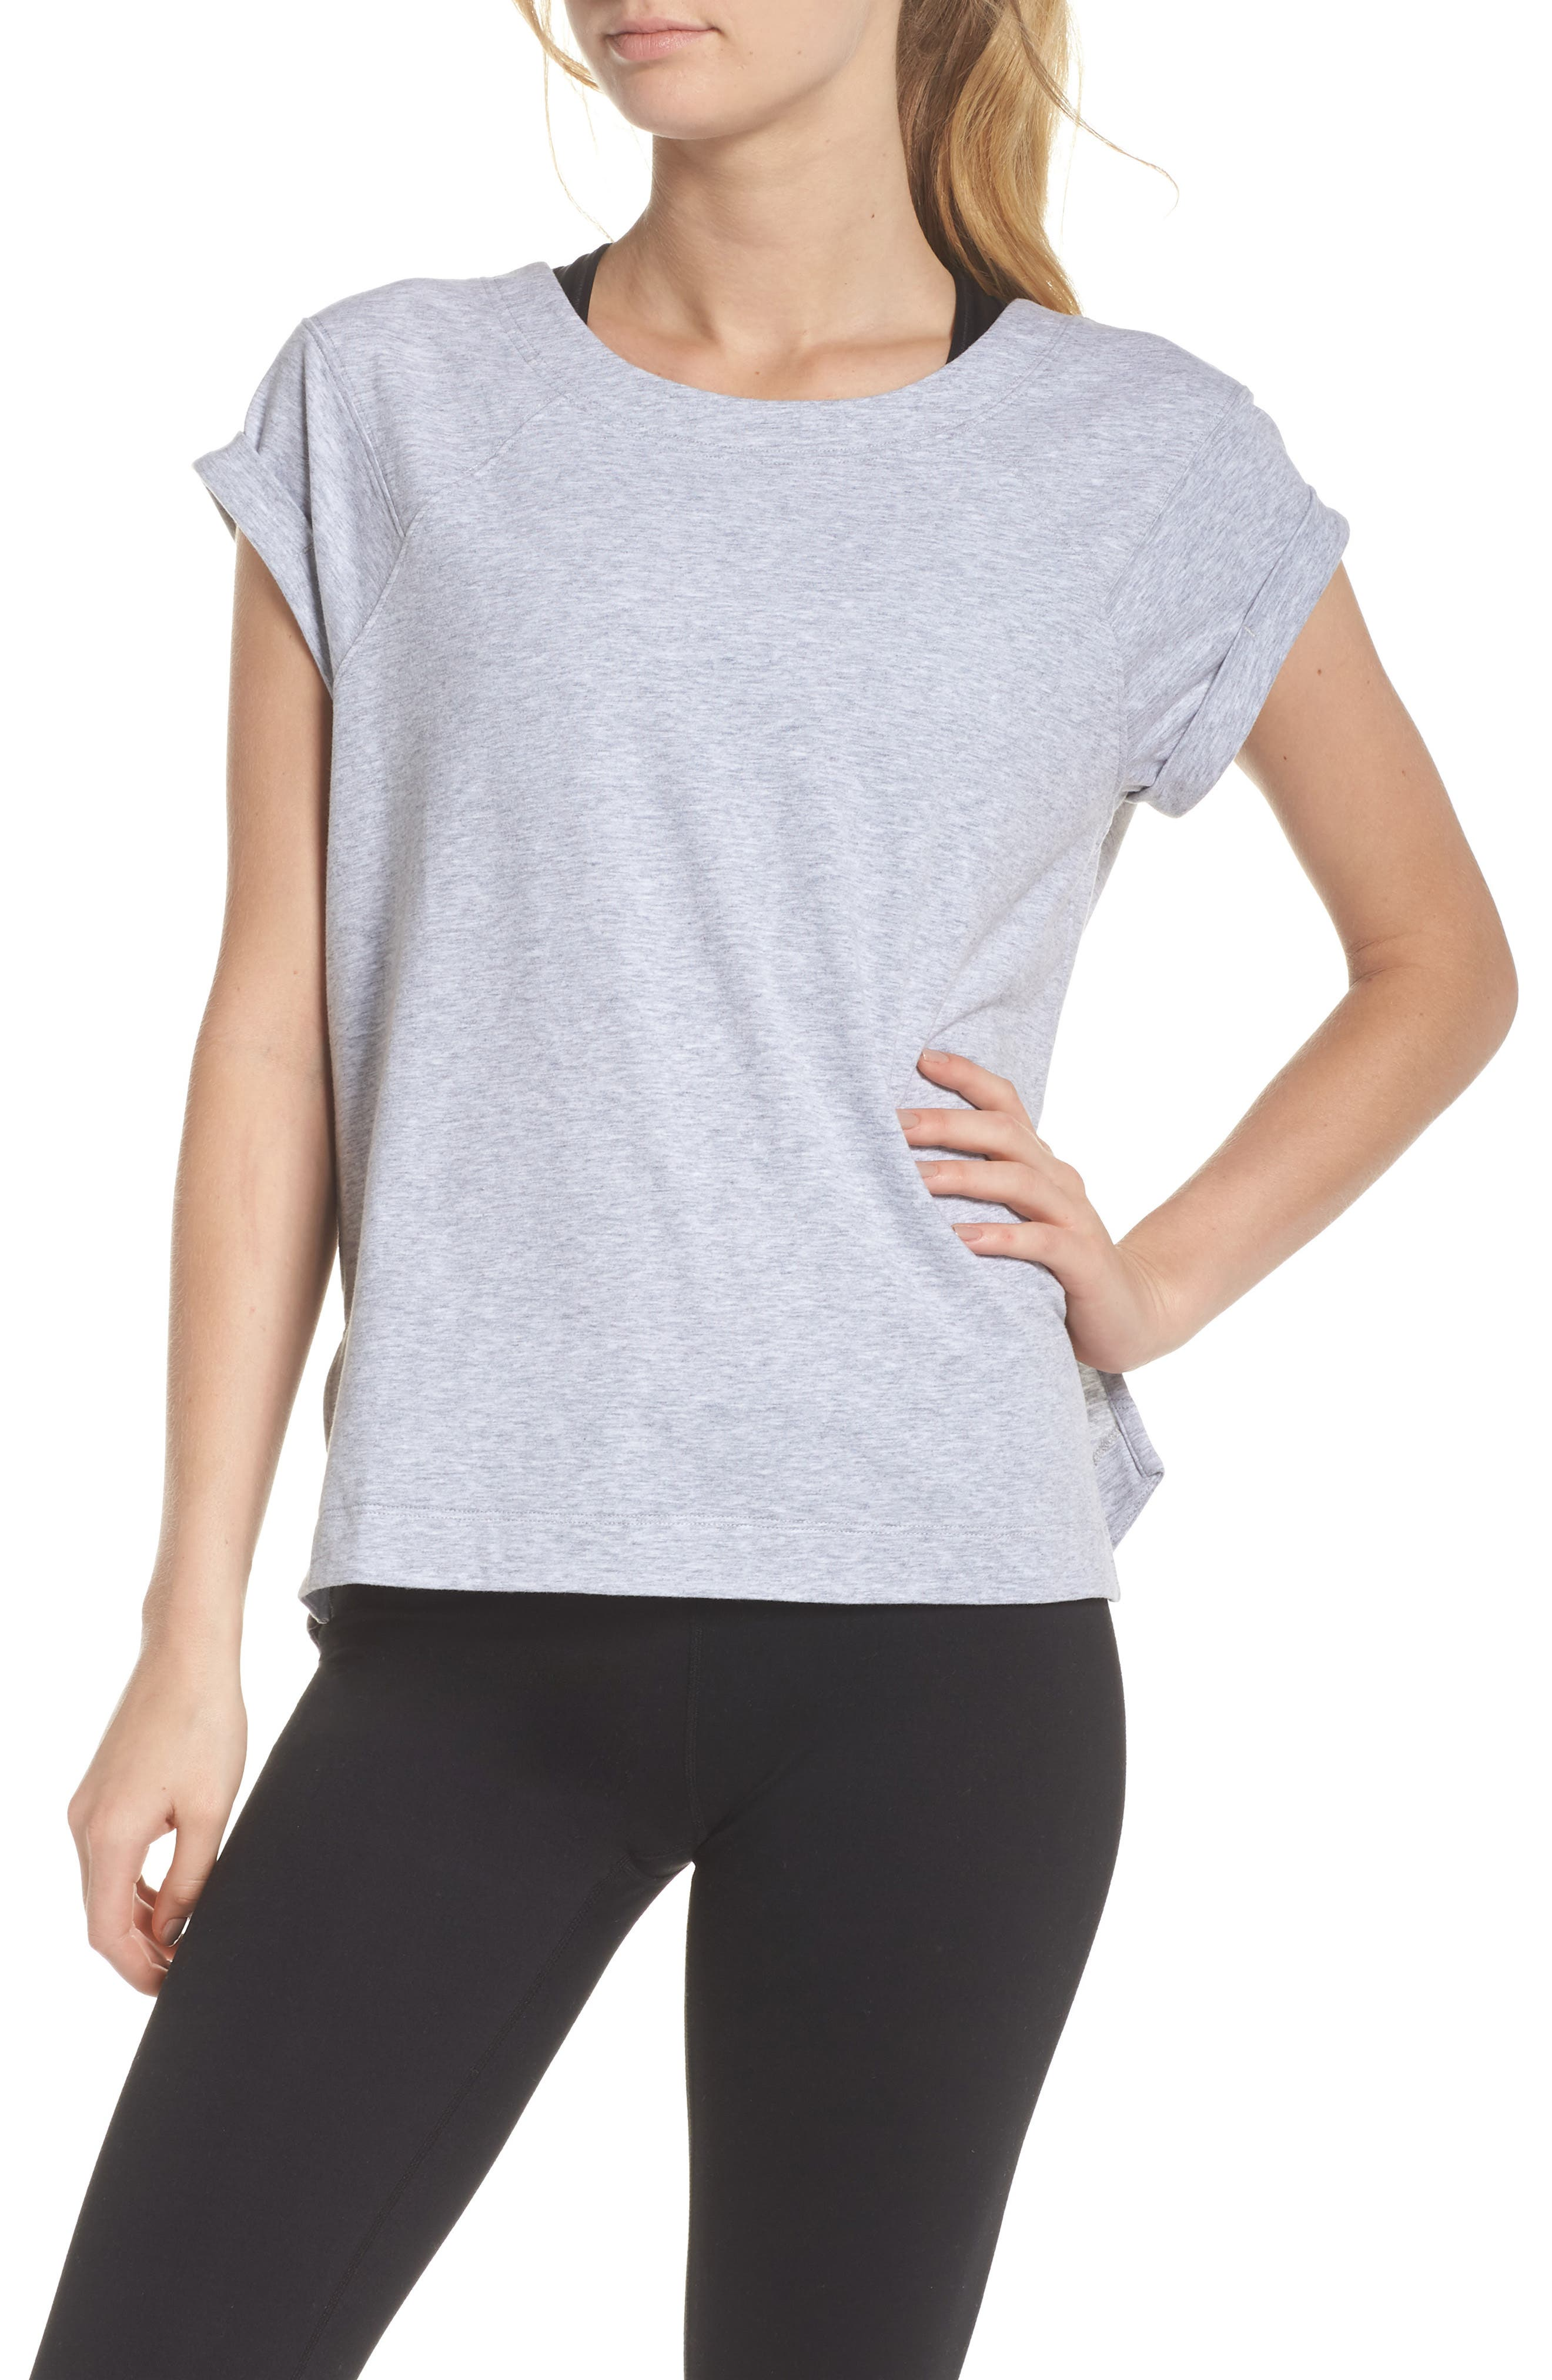 Karly Tee,                             Main thumbnail 1, color,                             GREY QUIET HEATHER